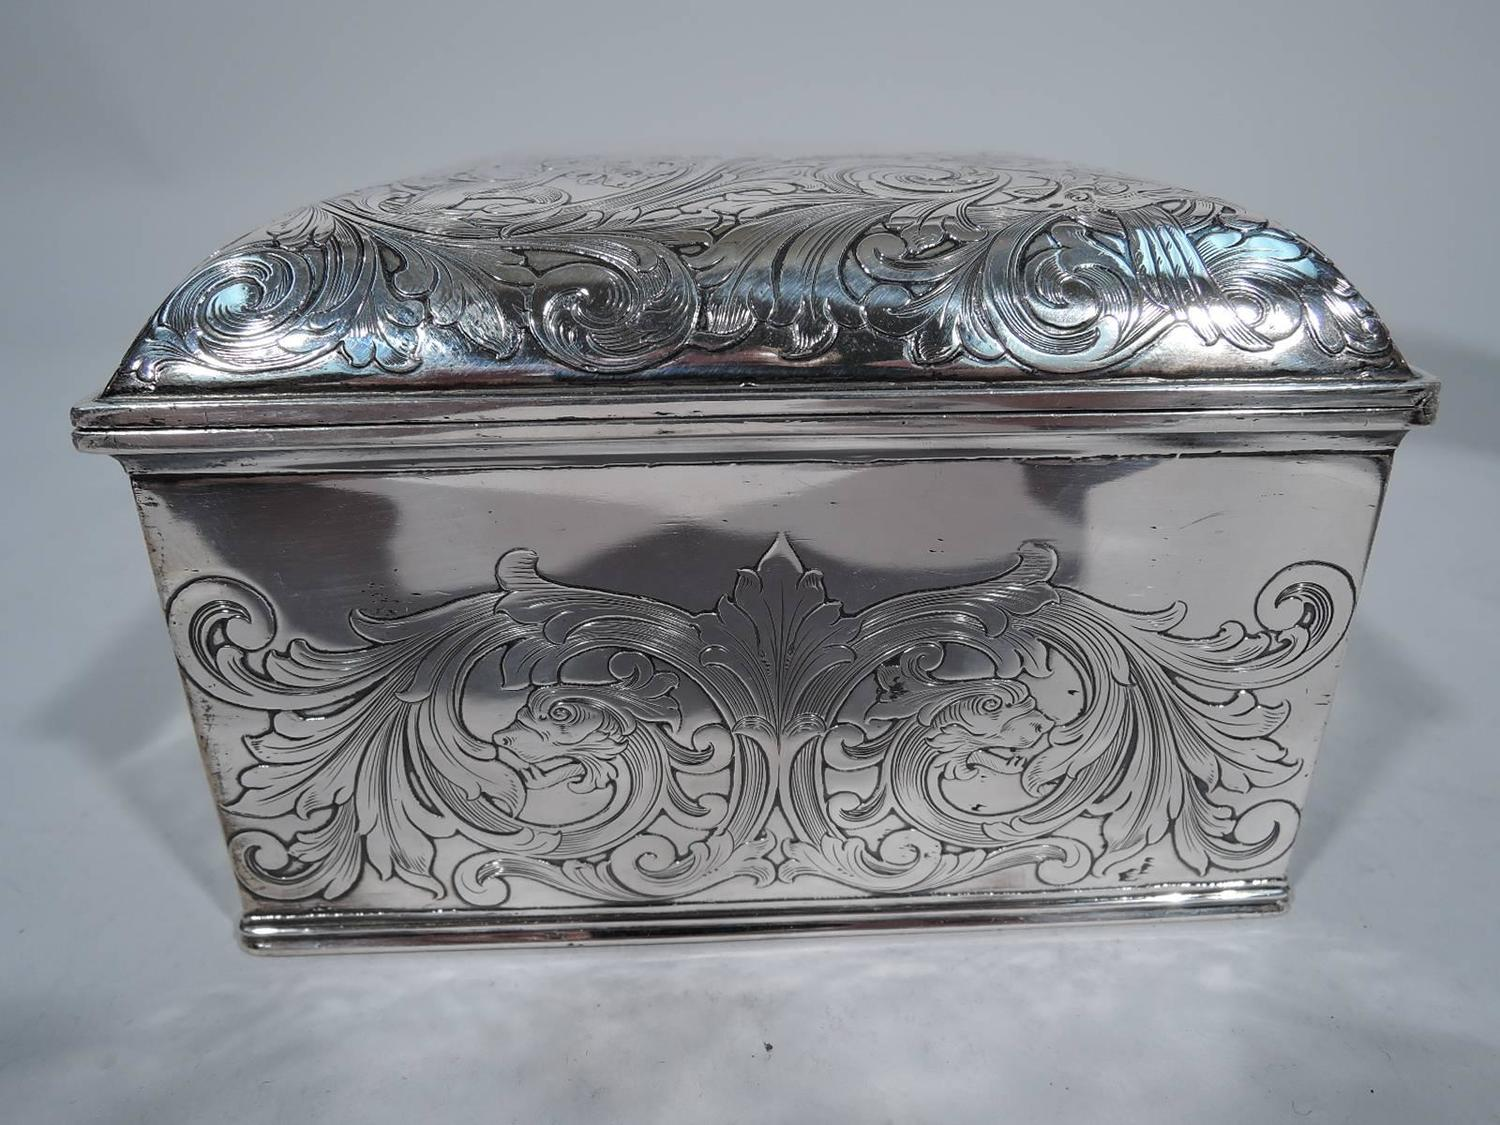 Antique Gorham Sterling Silver Jewelry Box For Sale At 1stdibs